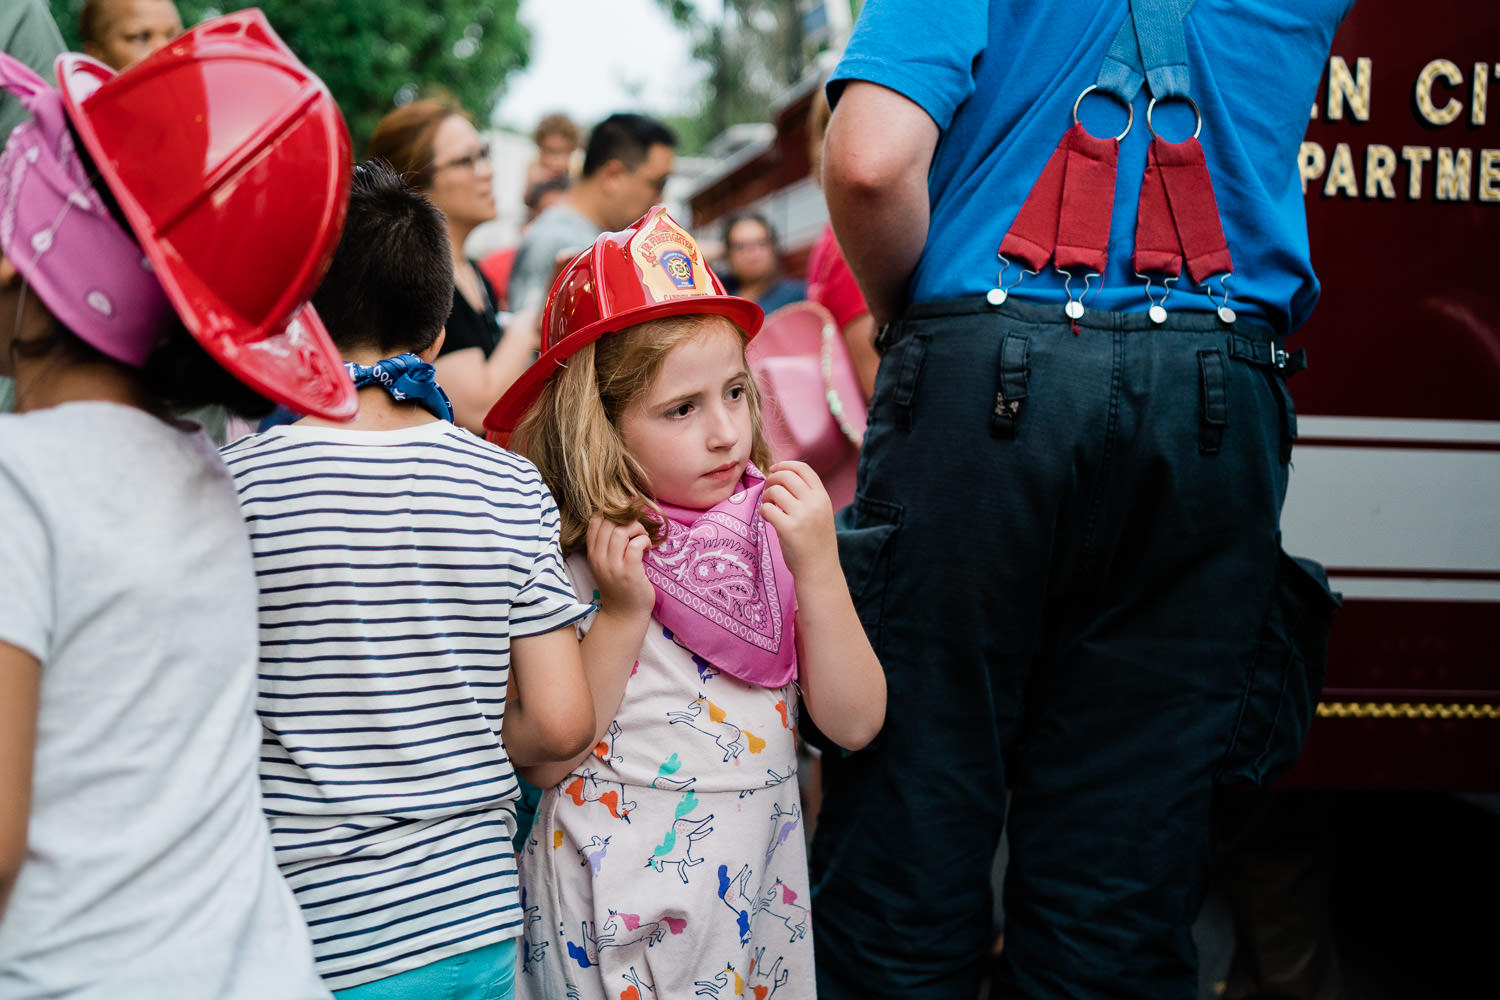 A little girl wanders through a crowd wearing a fire hat.